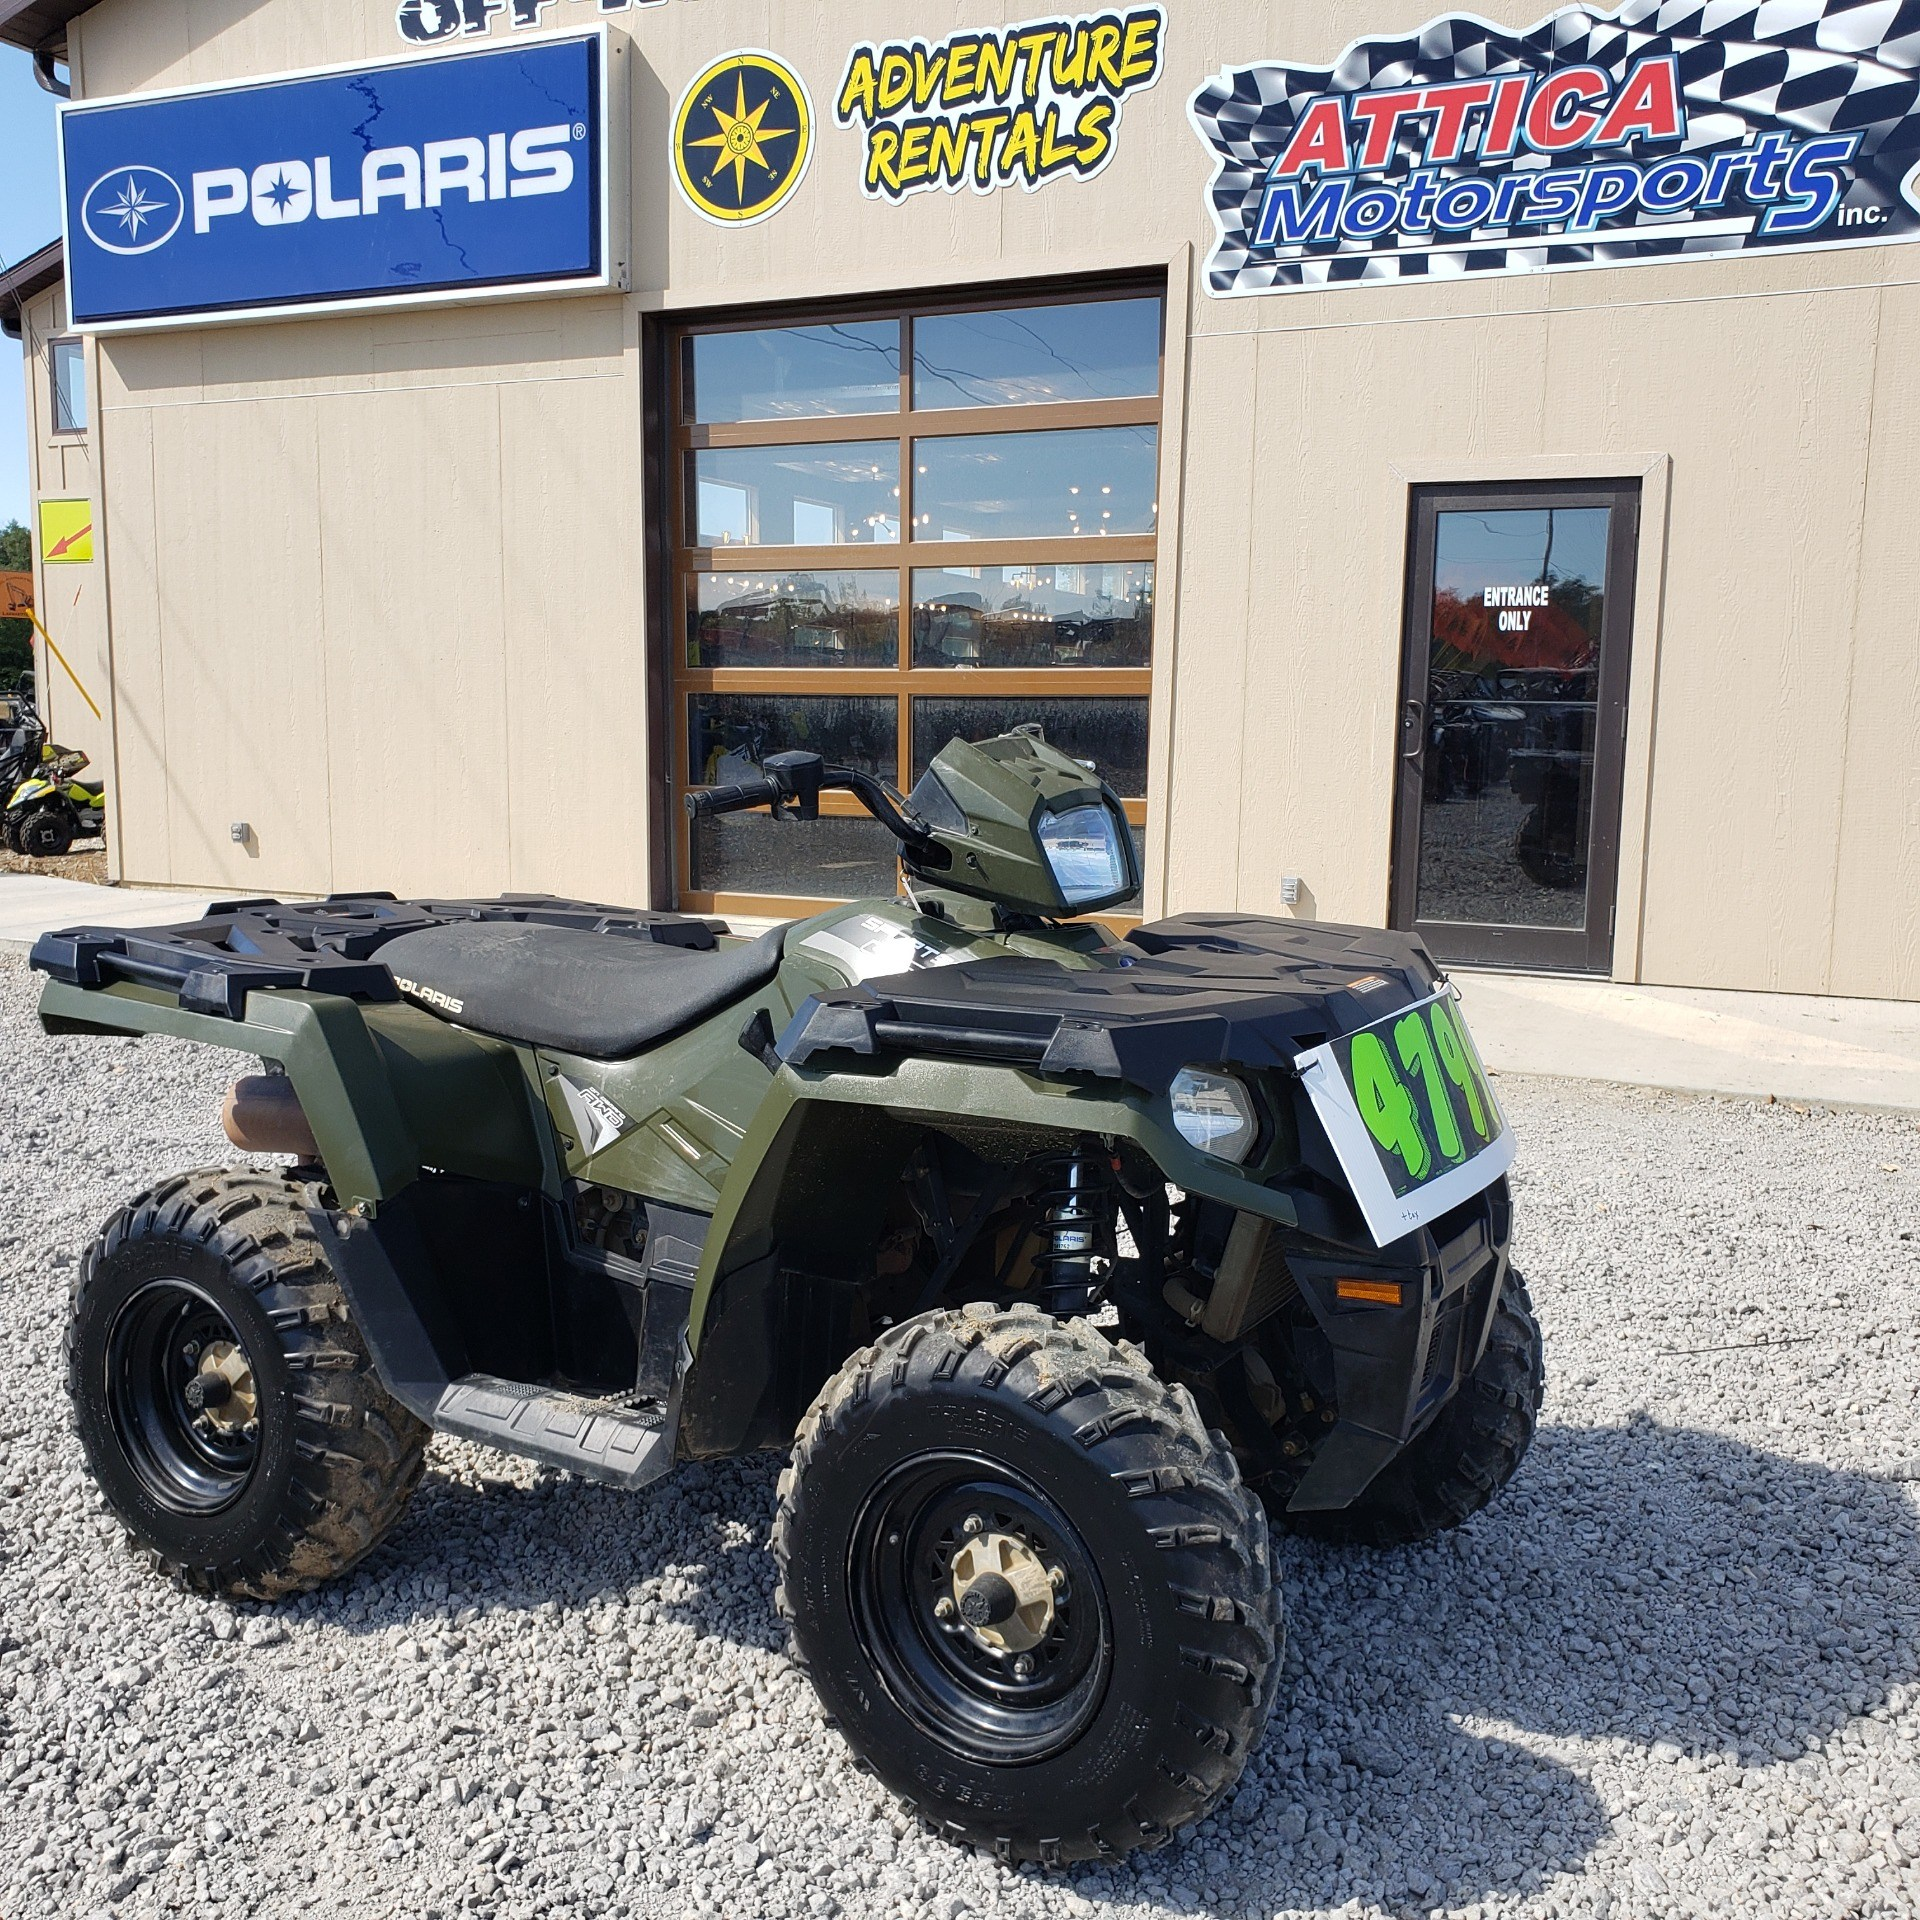 2018 Polaris Sportsman 450 H.O. in Attica, Indiana - Photo 8